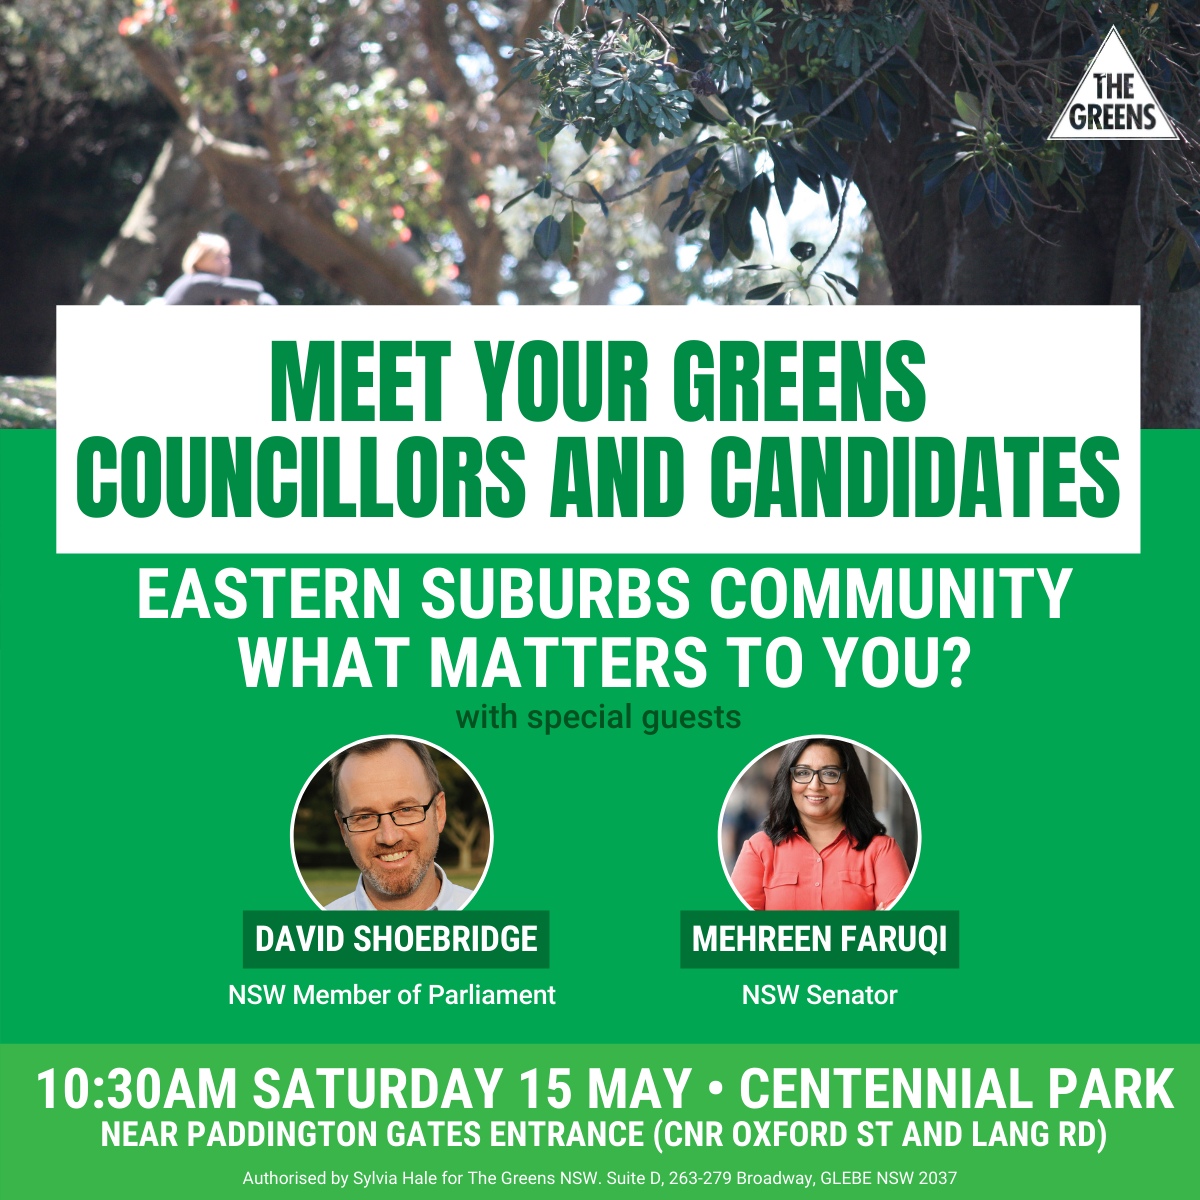 Help Shape Your Eastern Suburbs